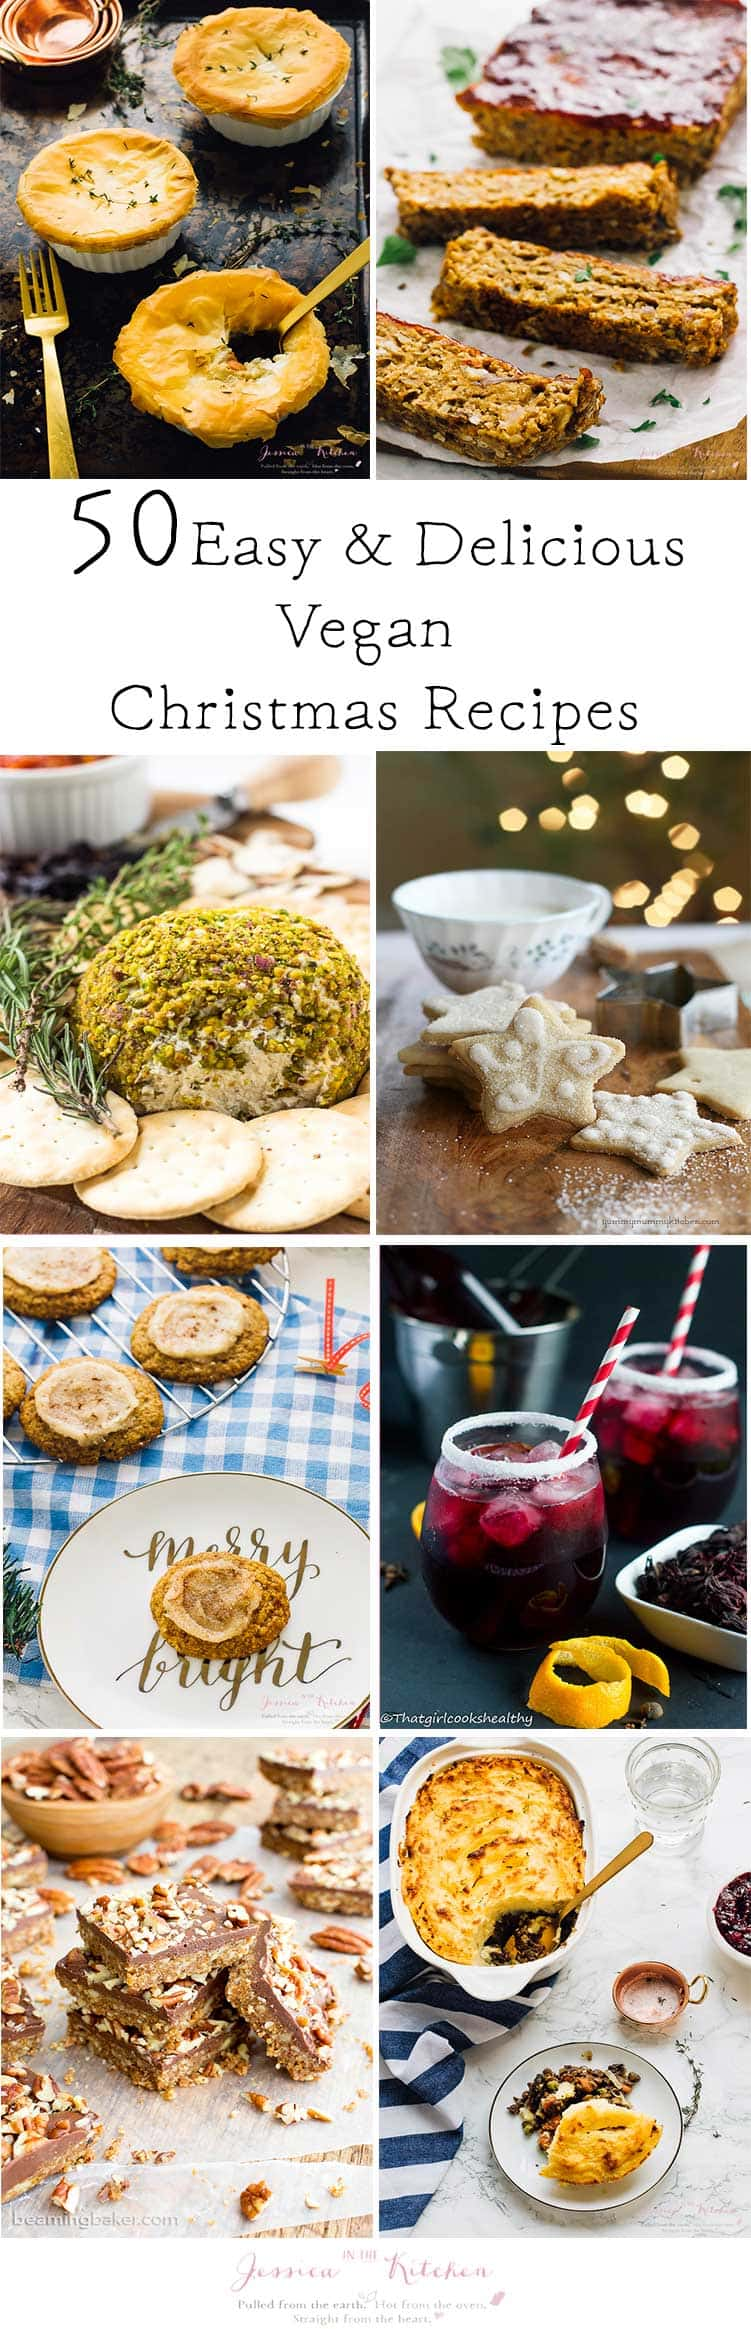 50 Delicious Vegan Christmas Recipes That You NEED To Try Now! Everything you'll need from breakfast to dinner to desserts. Enjoy!